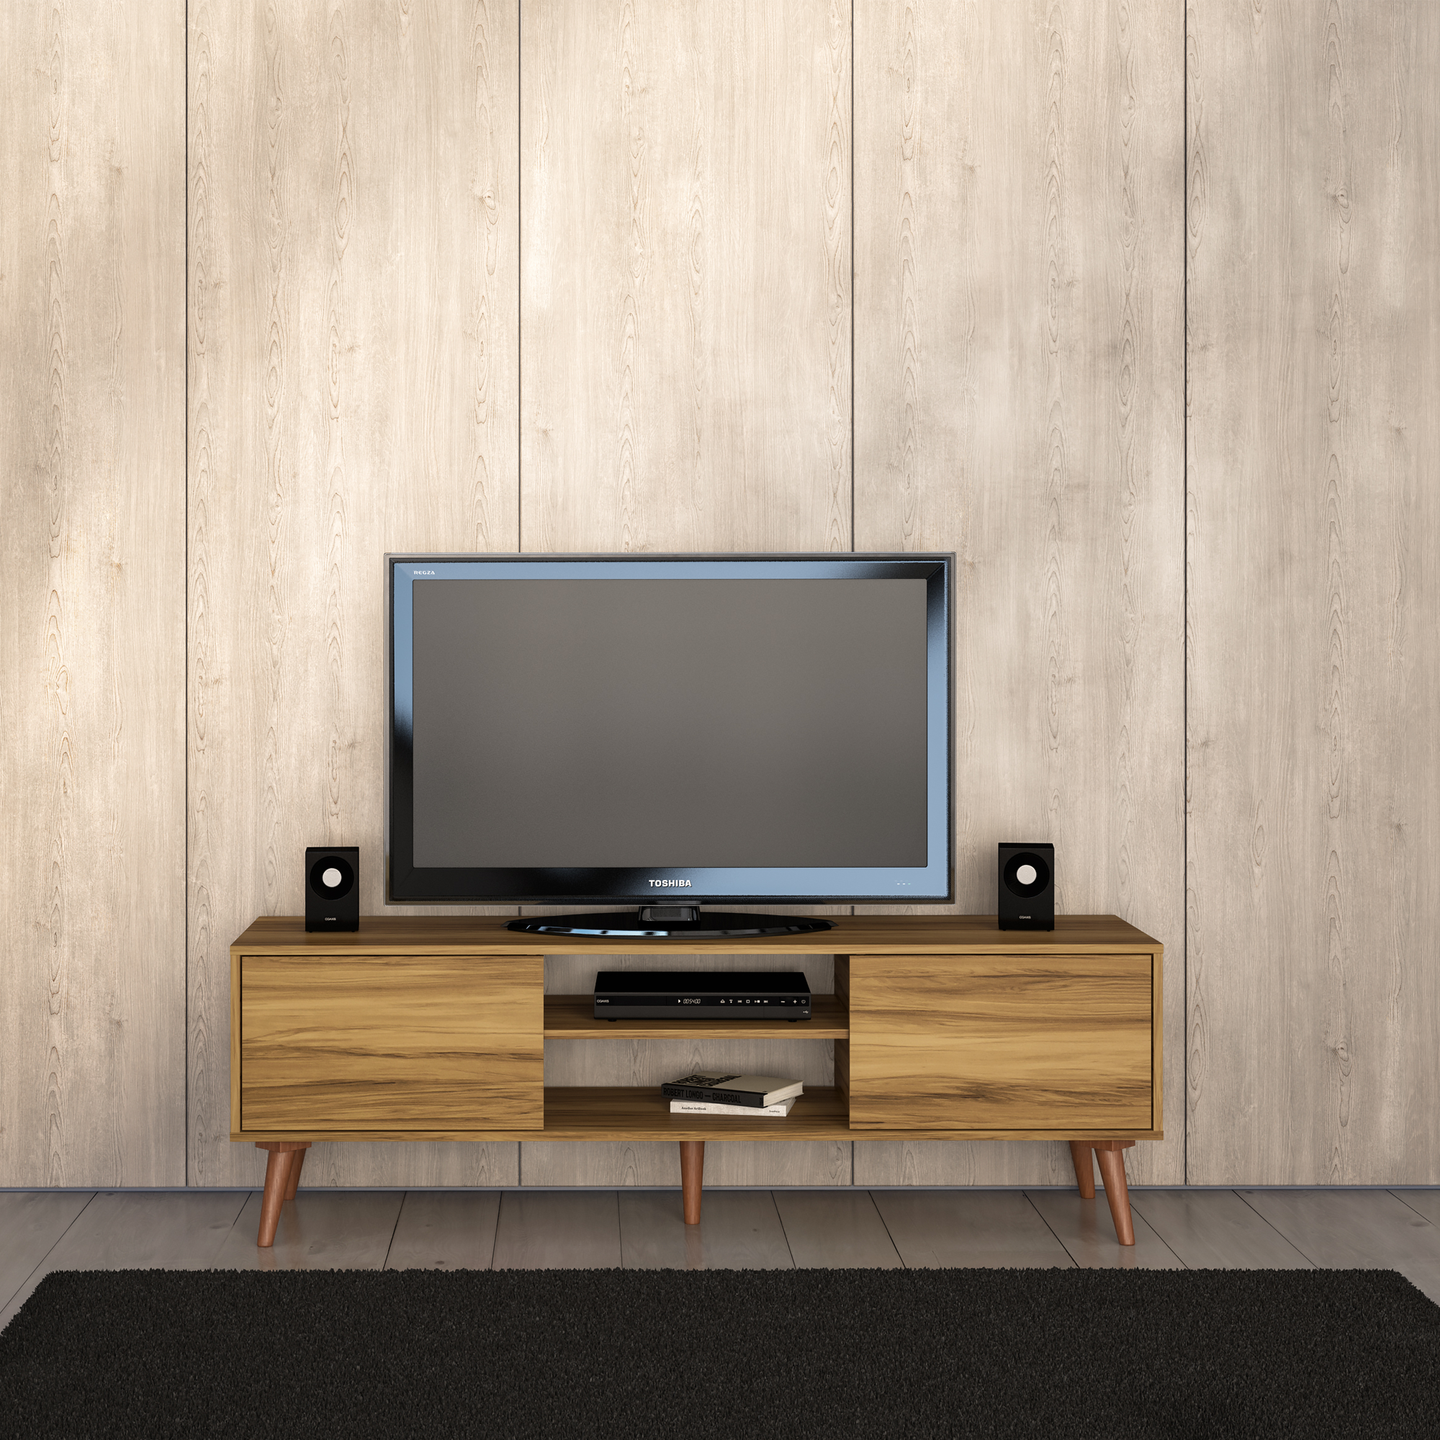 Boahaus Stylish TV Stand up to 65